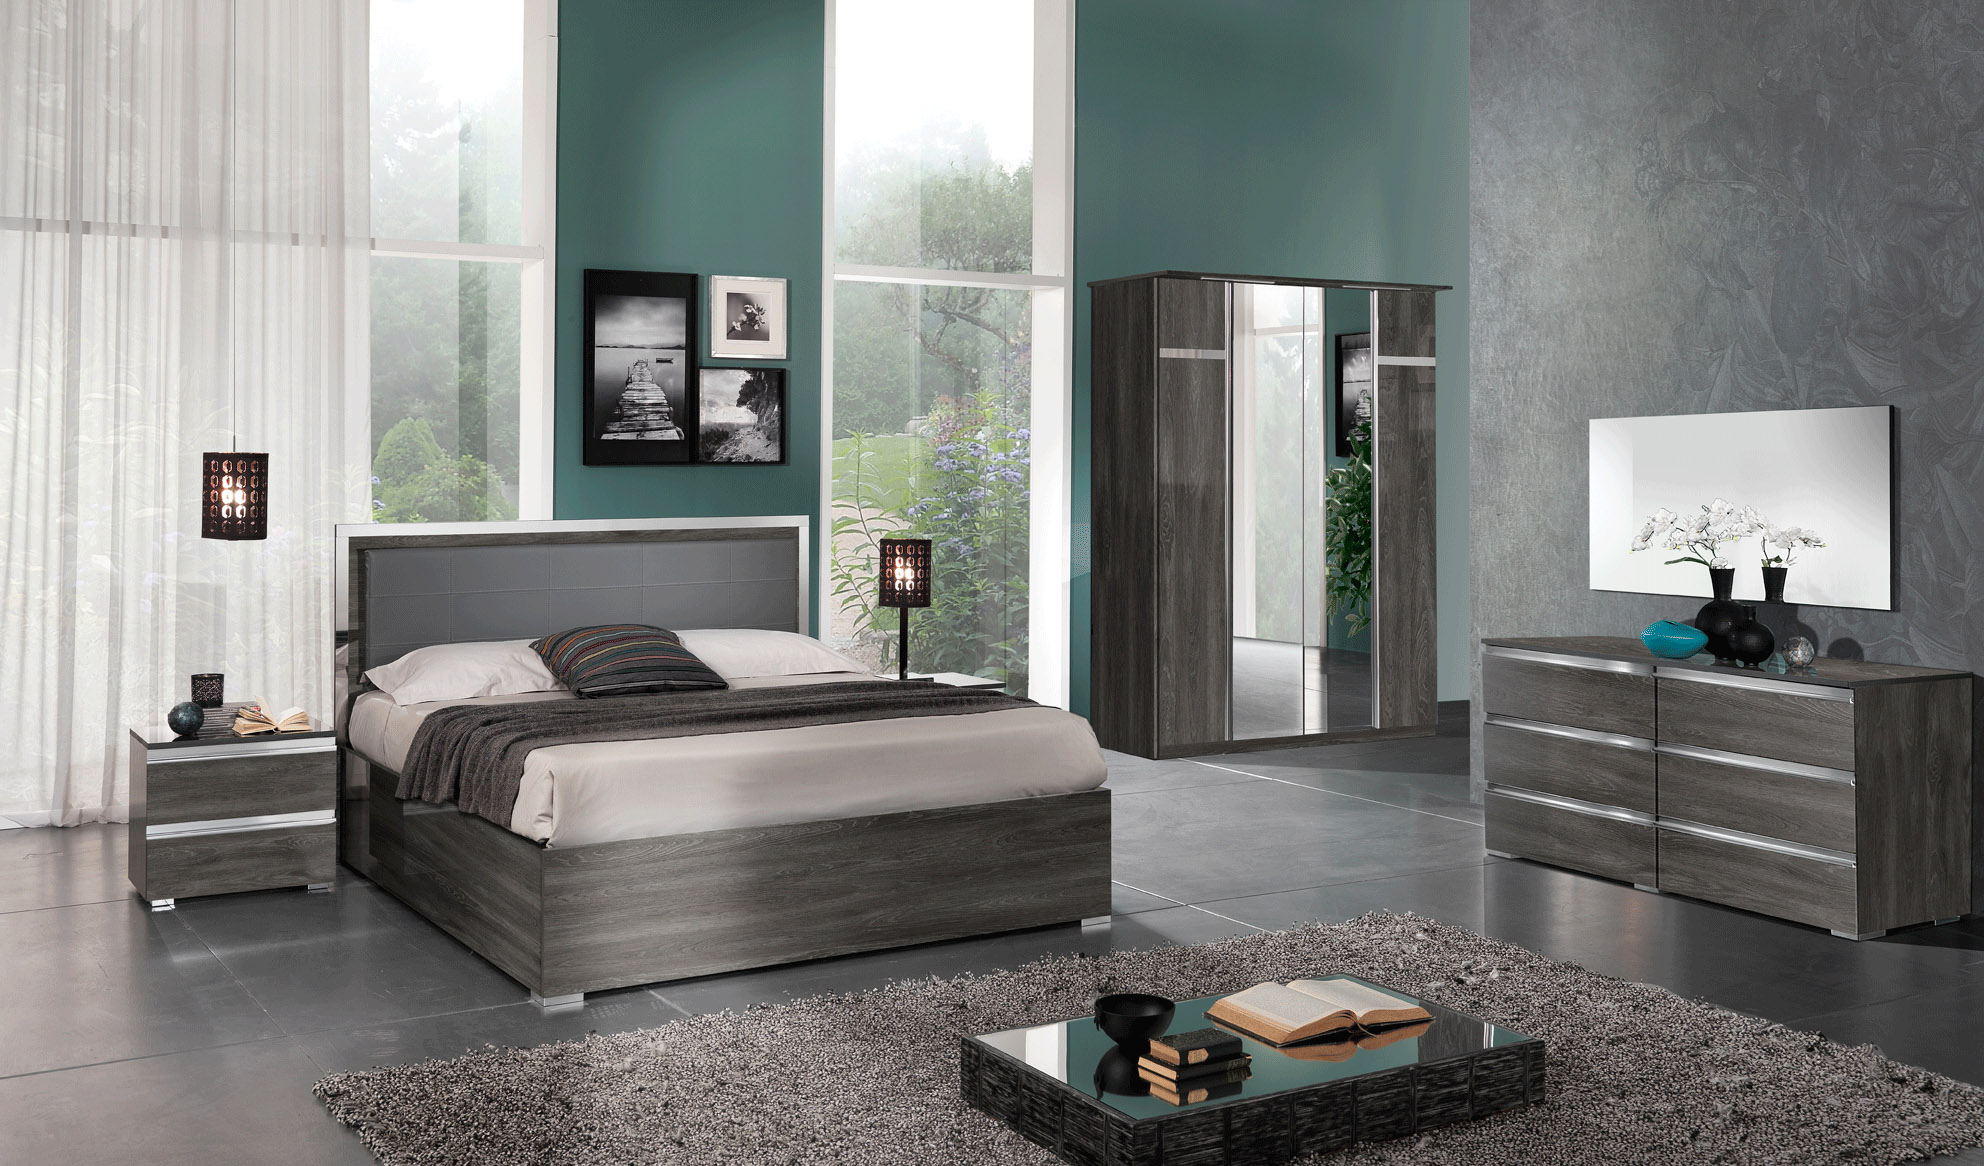 made in italy leather contemporary platform bedroom sets 10655 | italian bed furnishing grey master bedroom suite dreser oxford